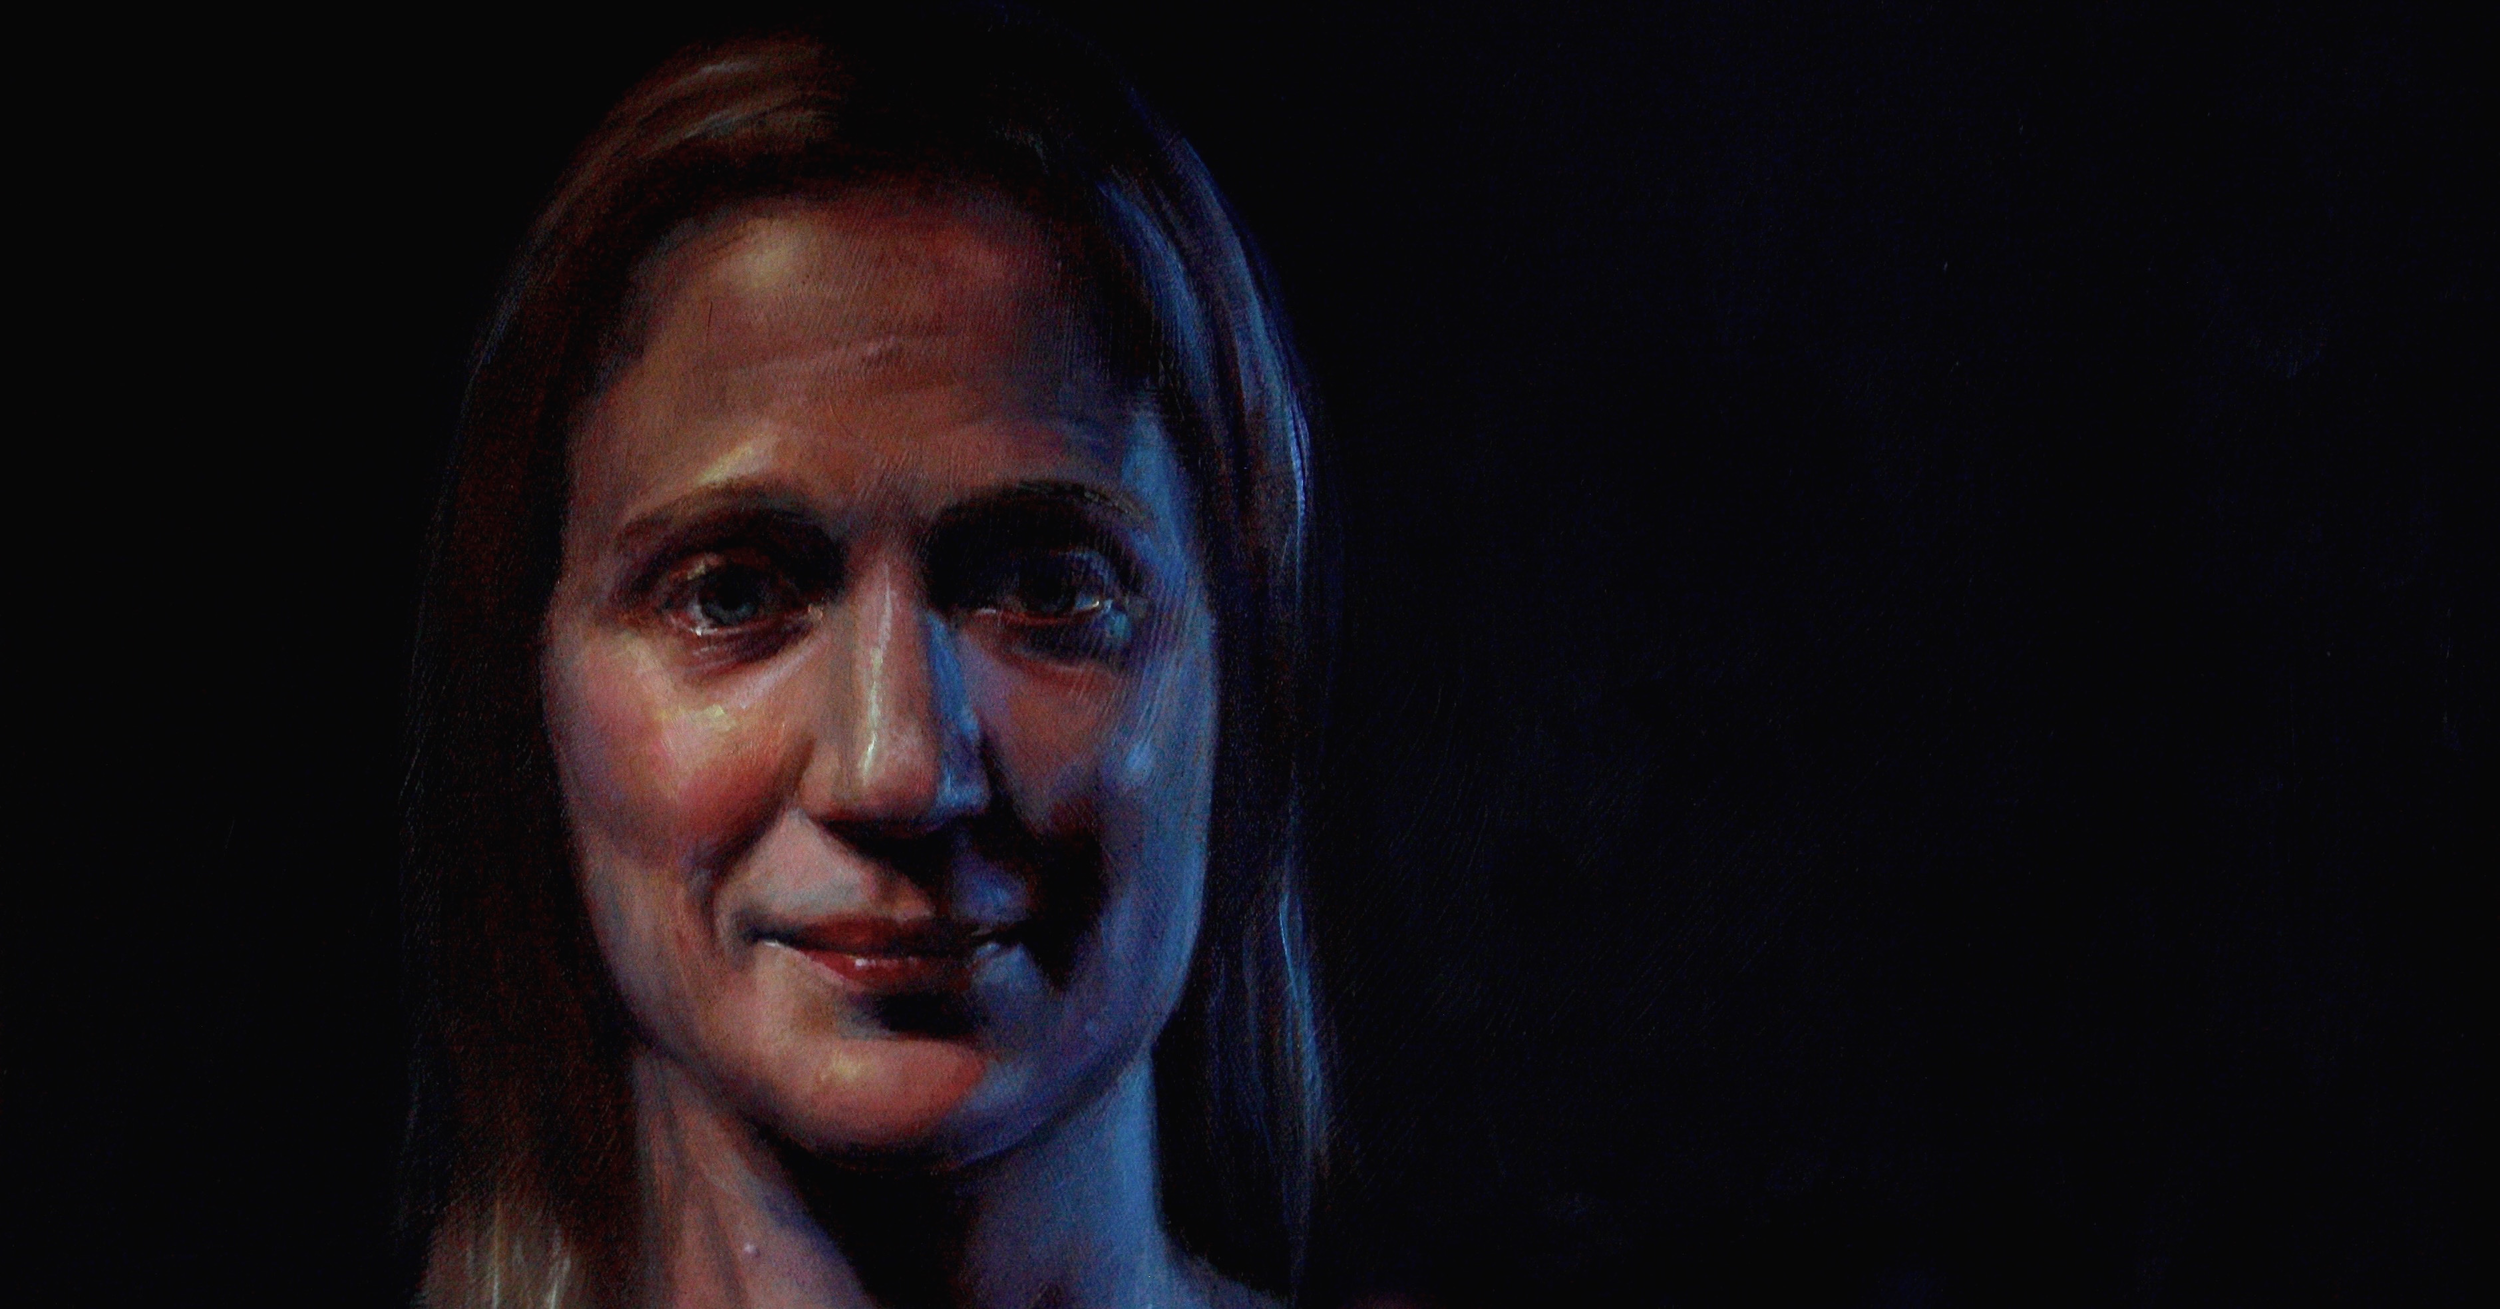 The portrait of Dr Gemma Olsson.